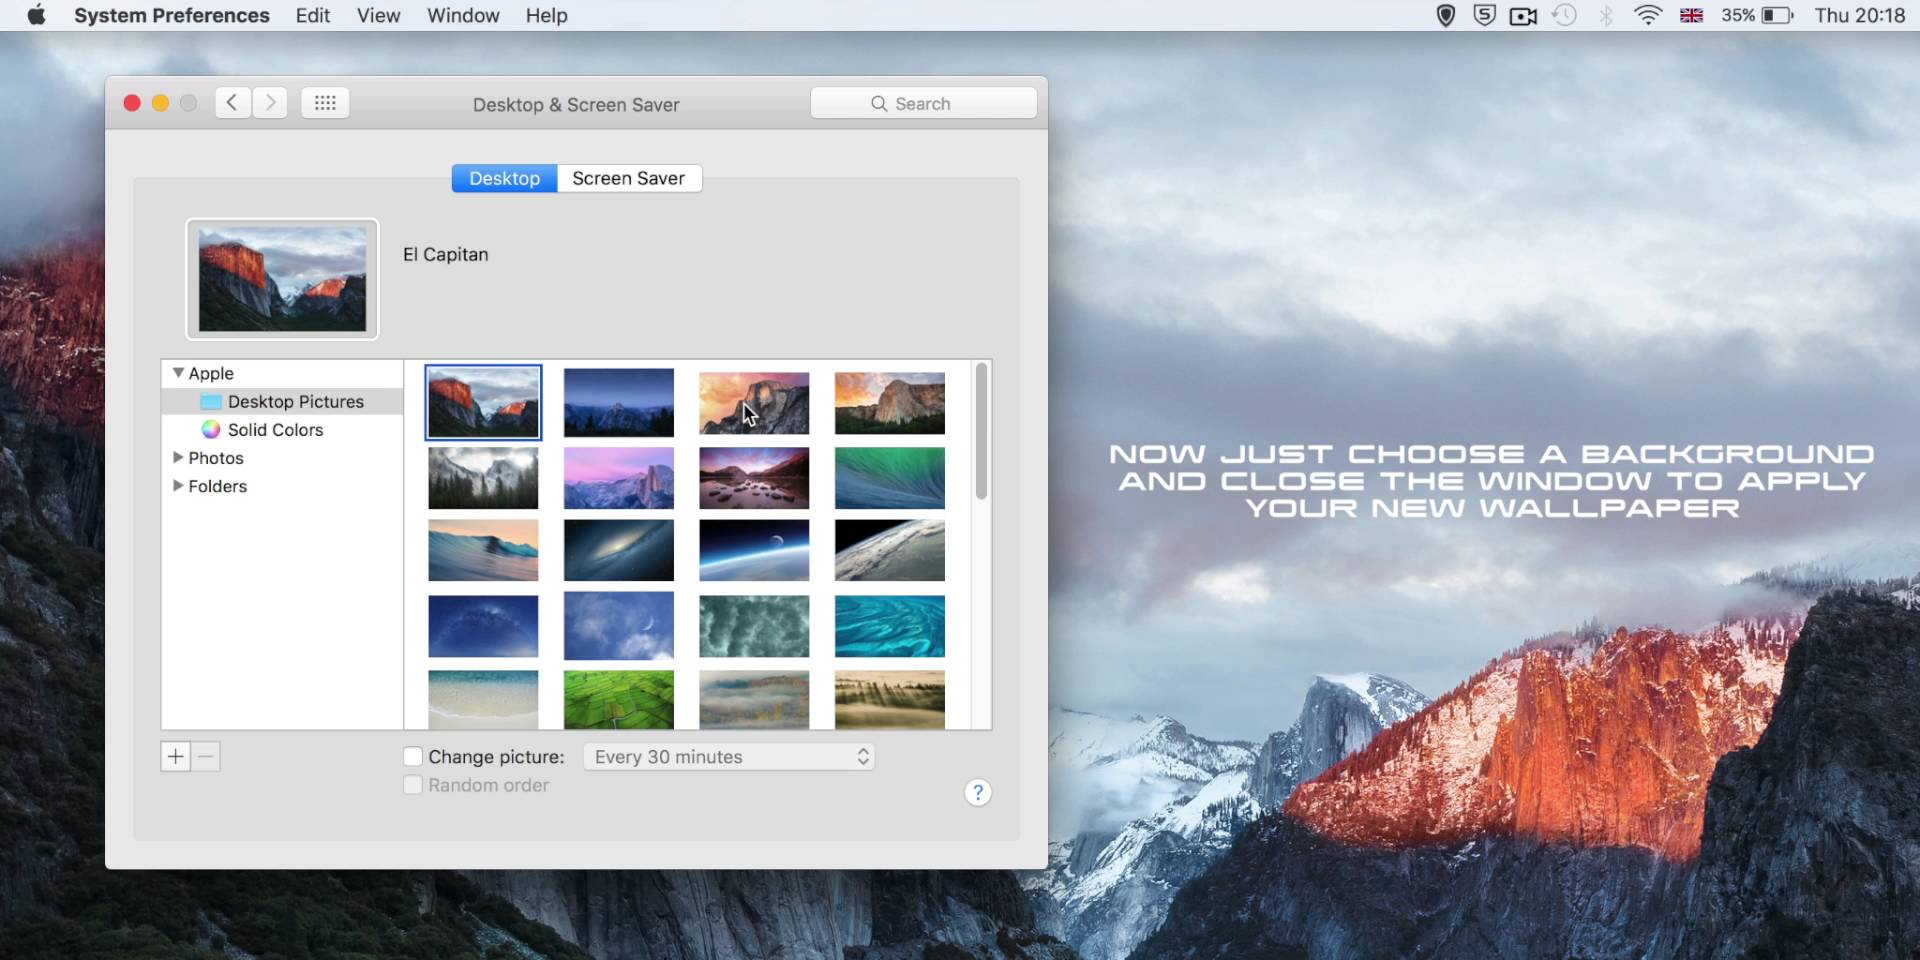 How To Change Your Wallpaper On Mac